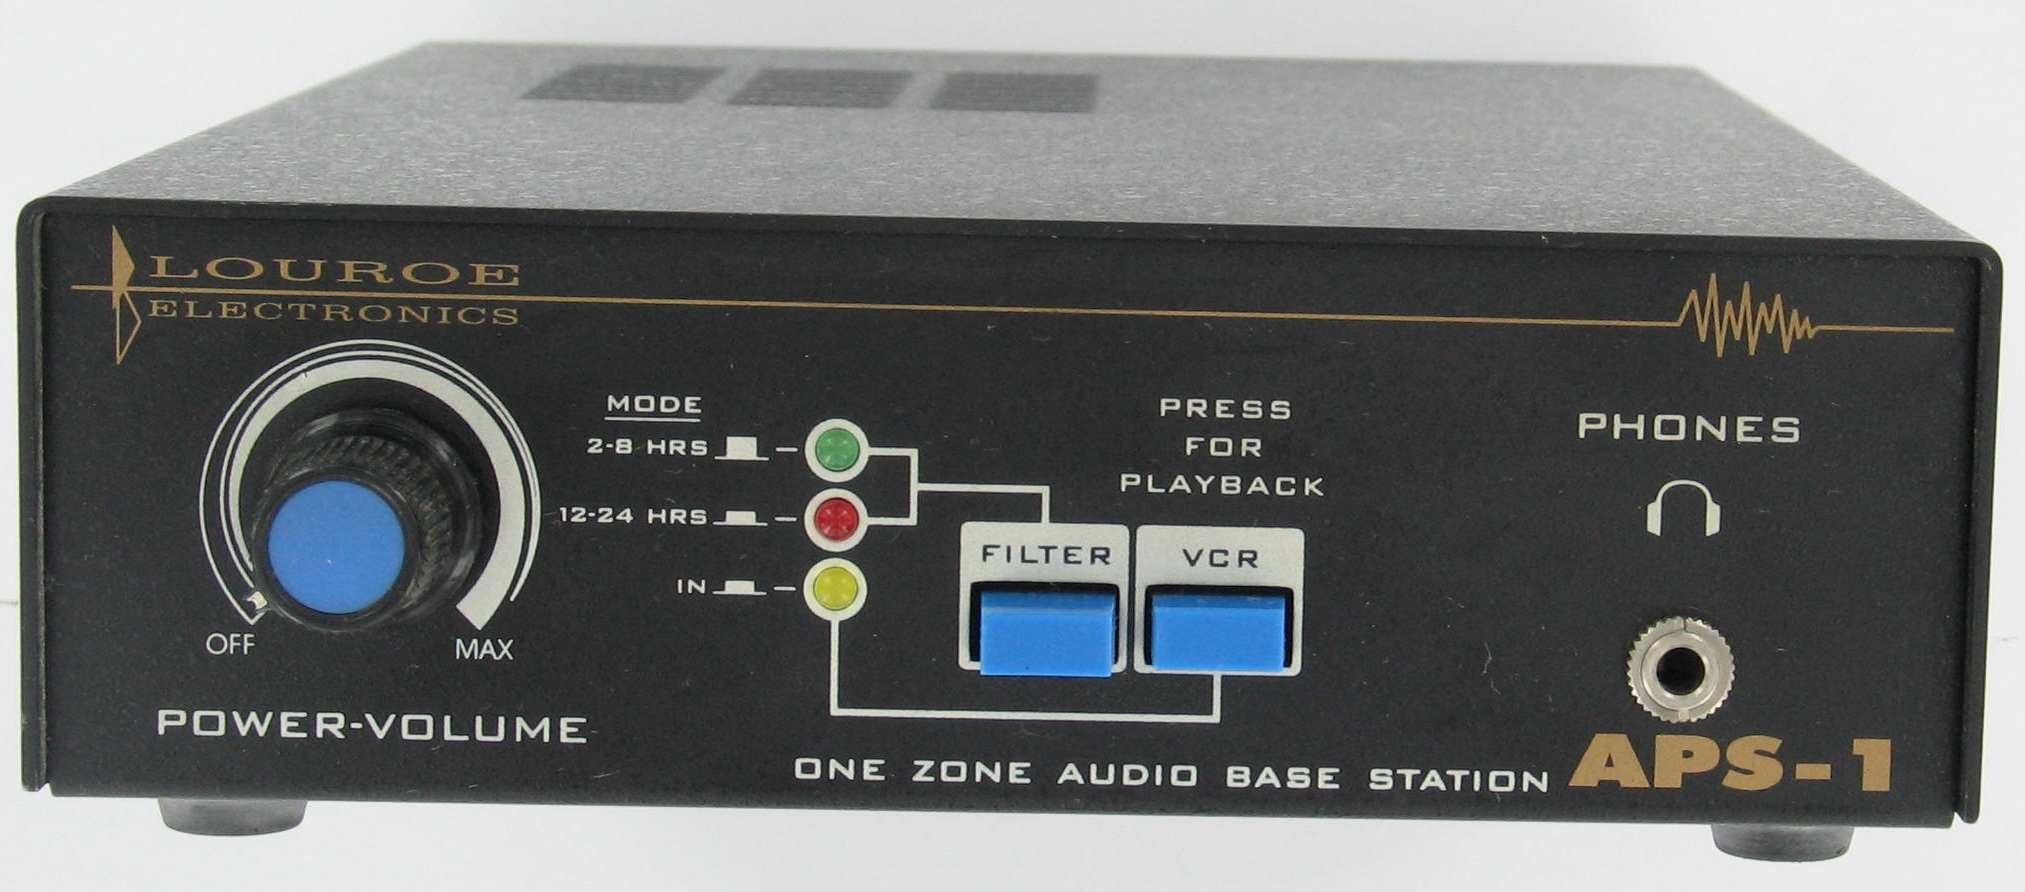 AUDIO BASE STATION LOUROE APS-1 ONE ZONE WITH POWER SUPPLY - REFURBISHED